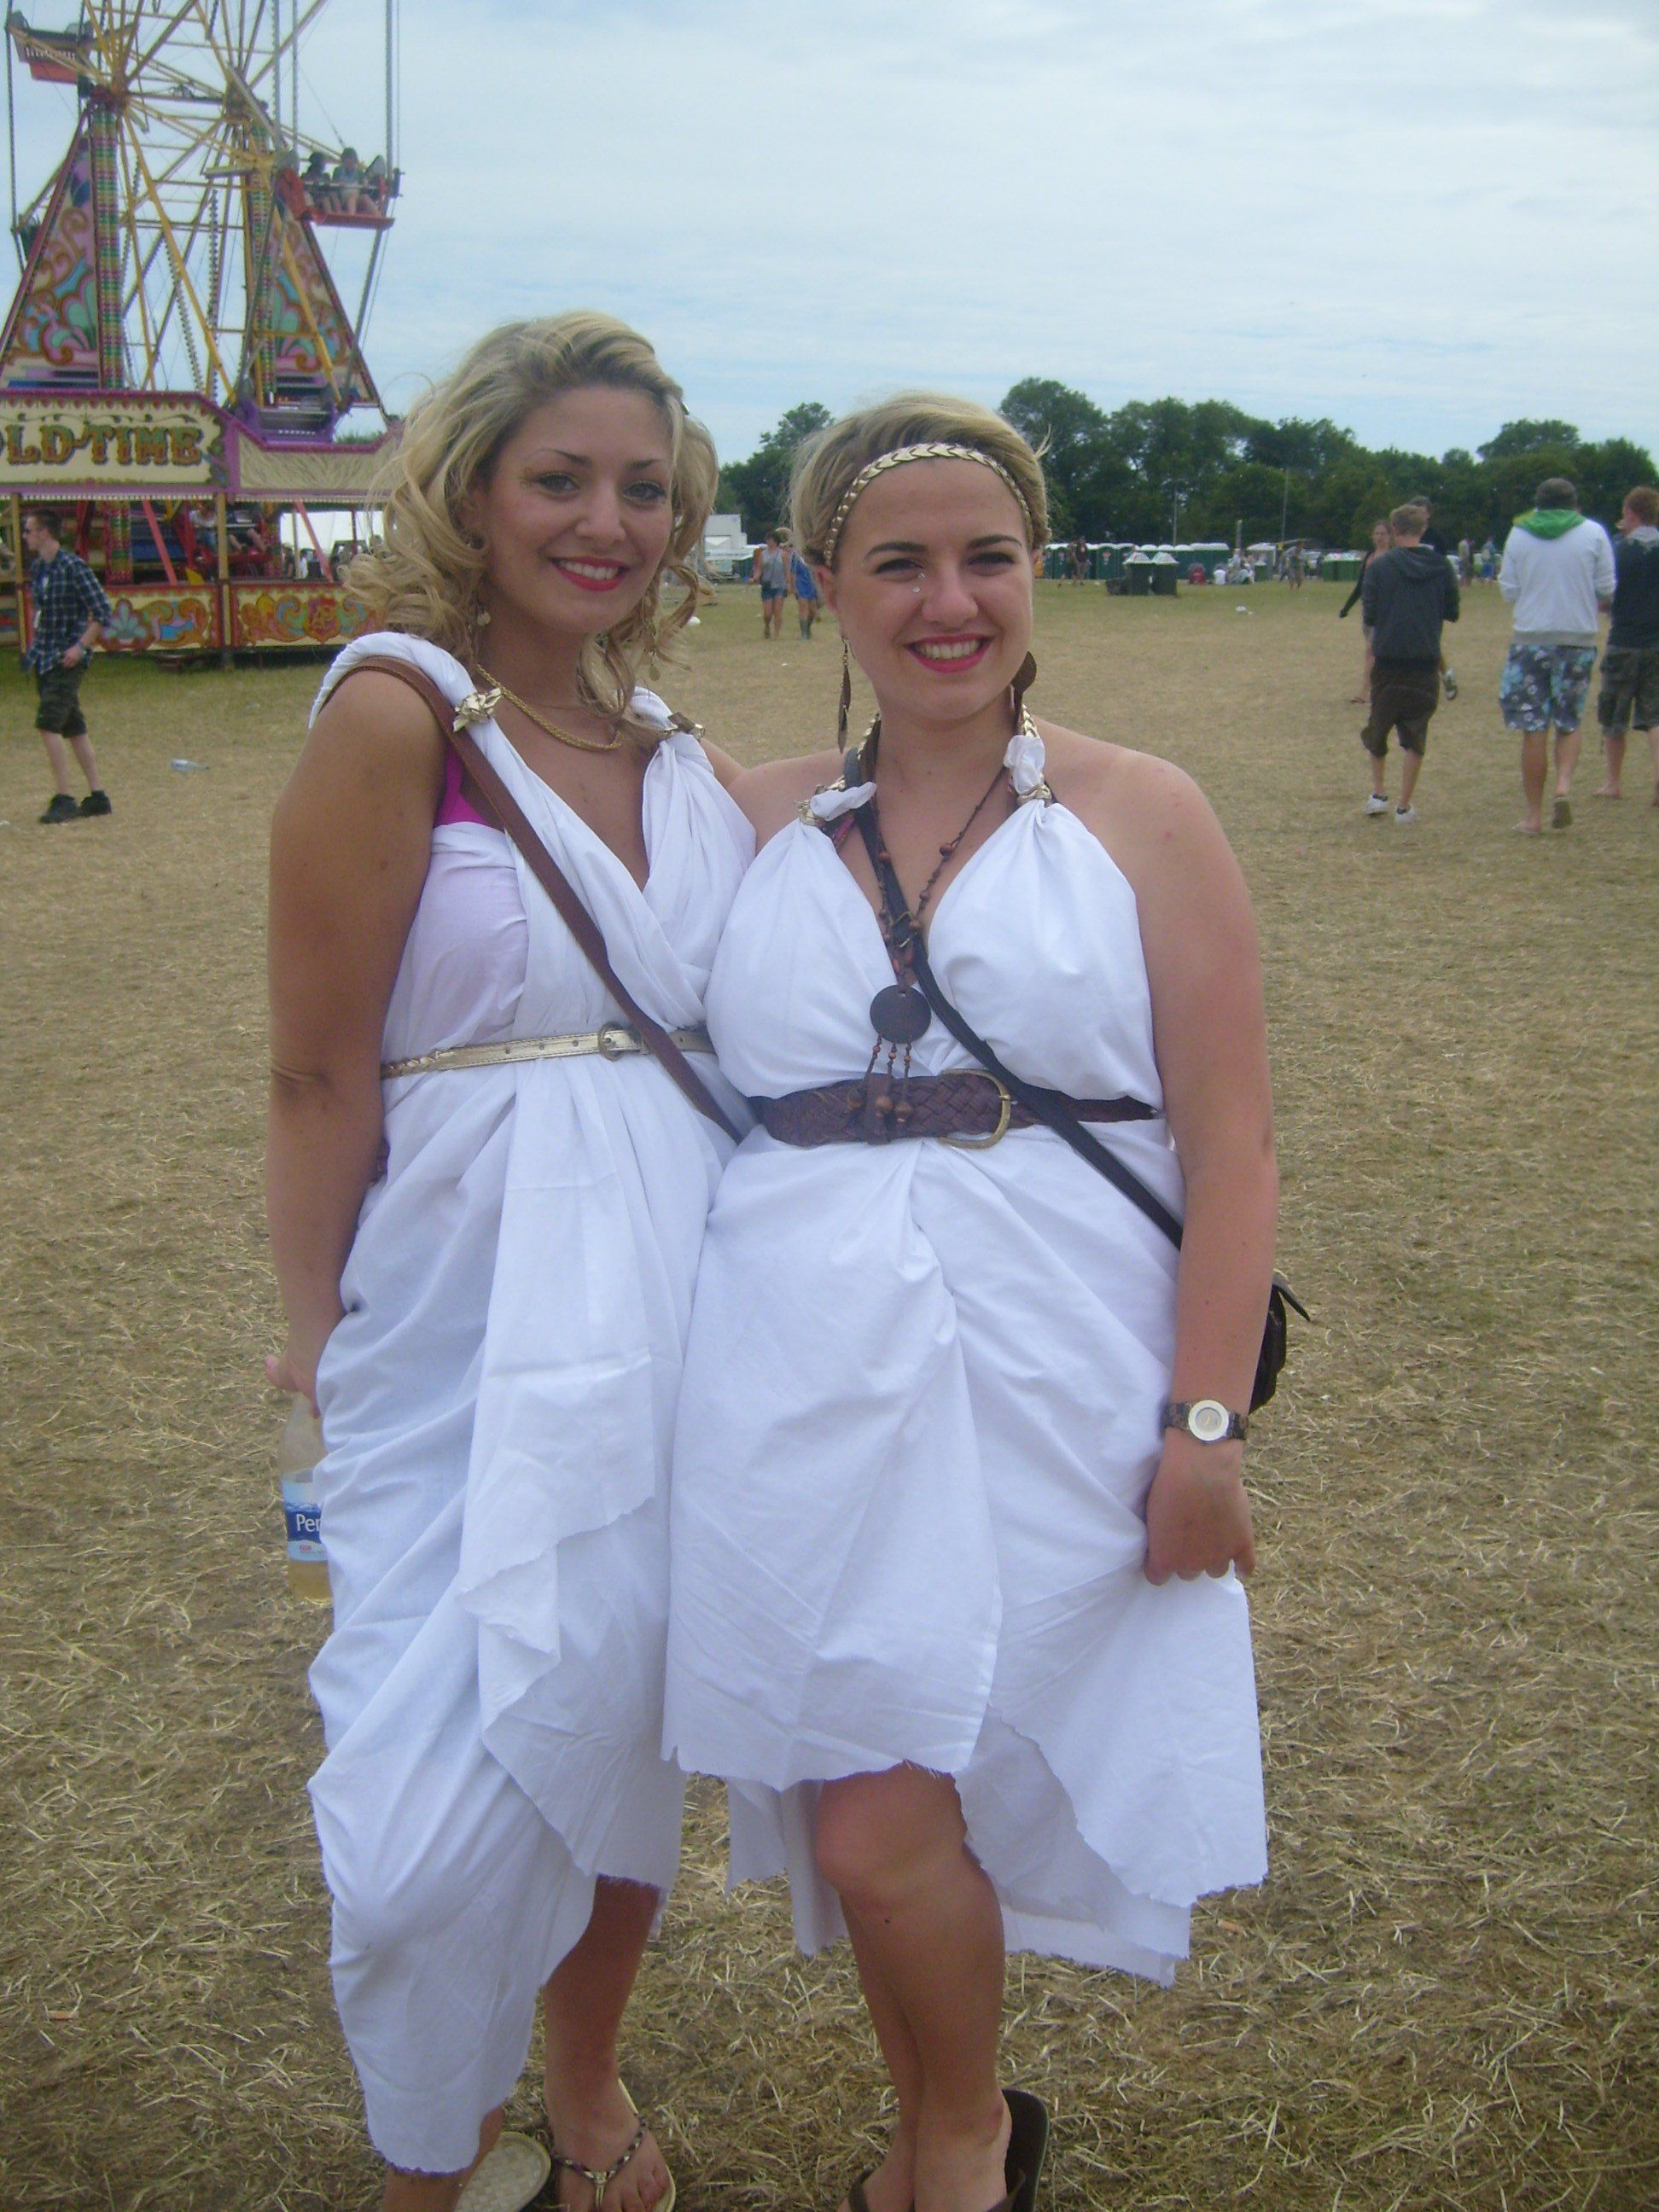 Toga Party Like The Layout PARTY Toga! Animal House Style